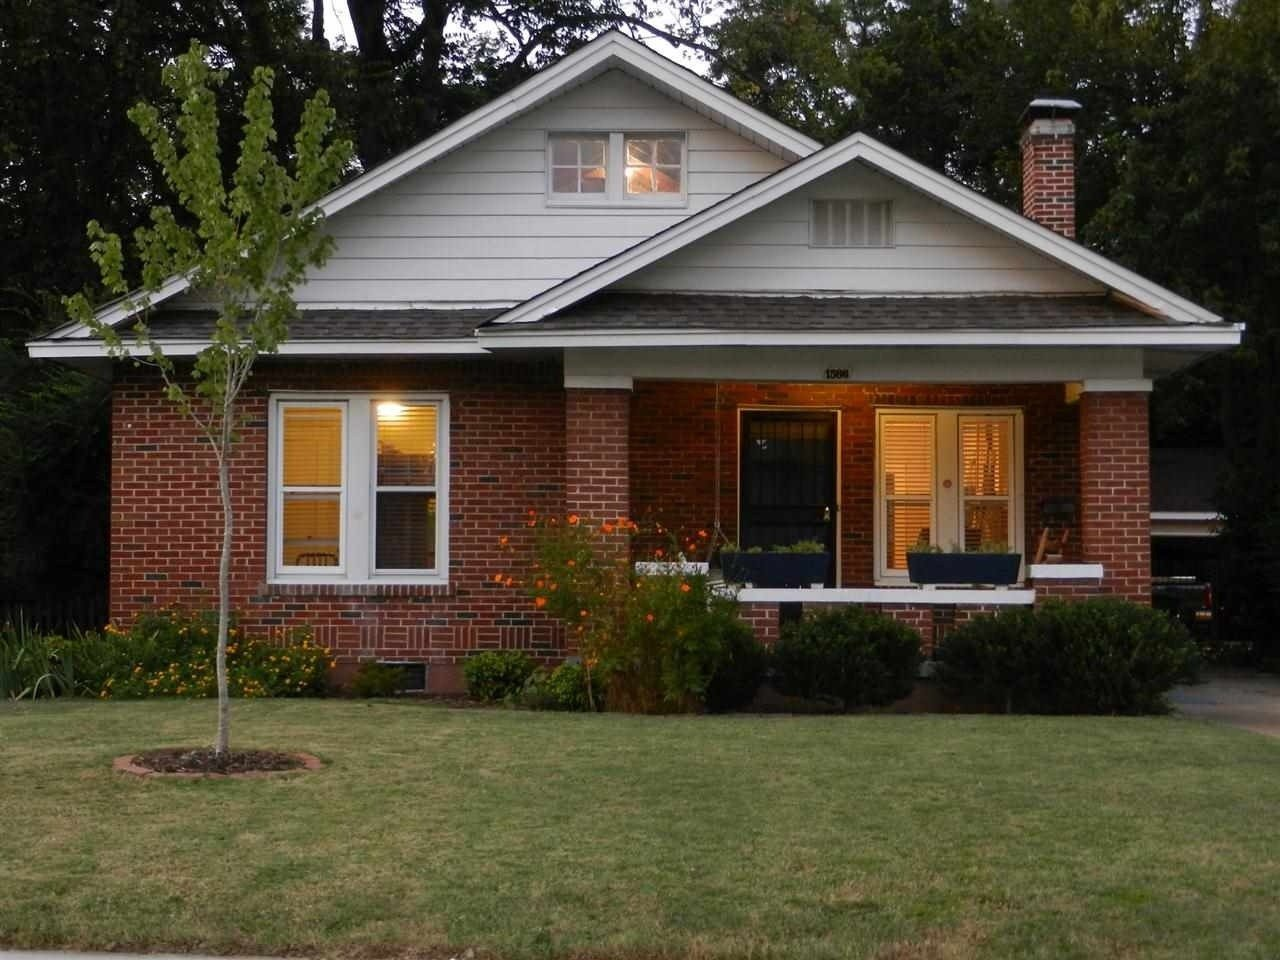 Best Homes On The Market For 200 000 With Pictures